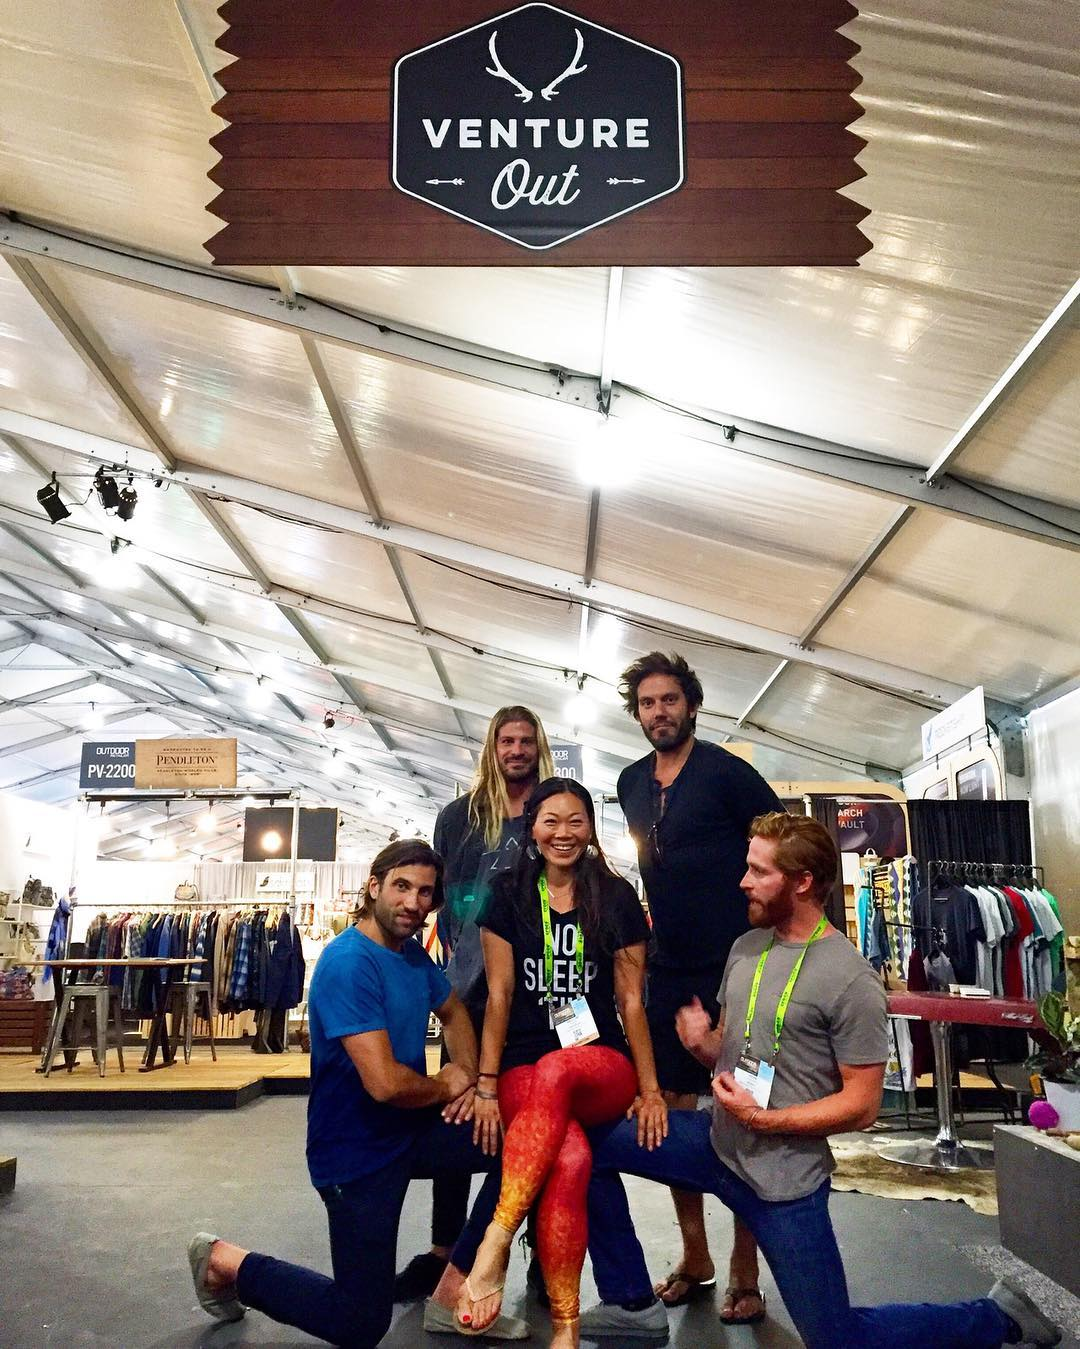 VENTURE OUT Day 2 at outdoor retailer. @alistkung workin' it with the @Indosole and @Bureo Skateboard crew at Venture Out @outdoorretailer - a curated selection of brands at the forefront of the modern outdoor experience, to attract new, younger and...